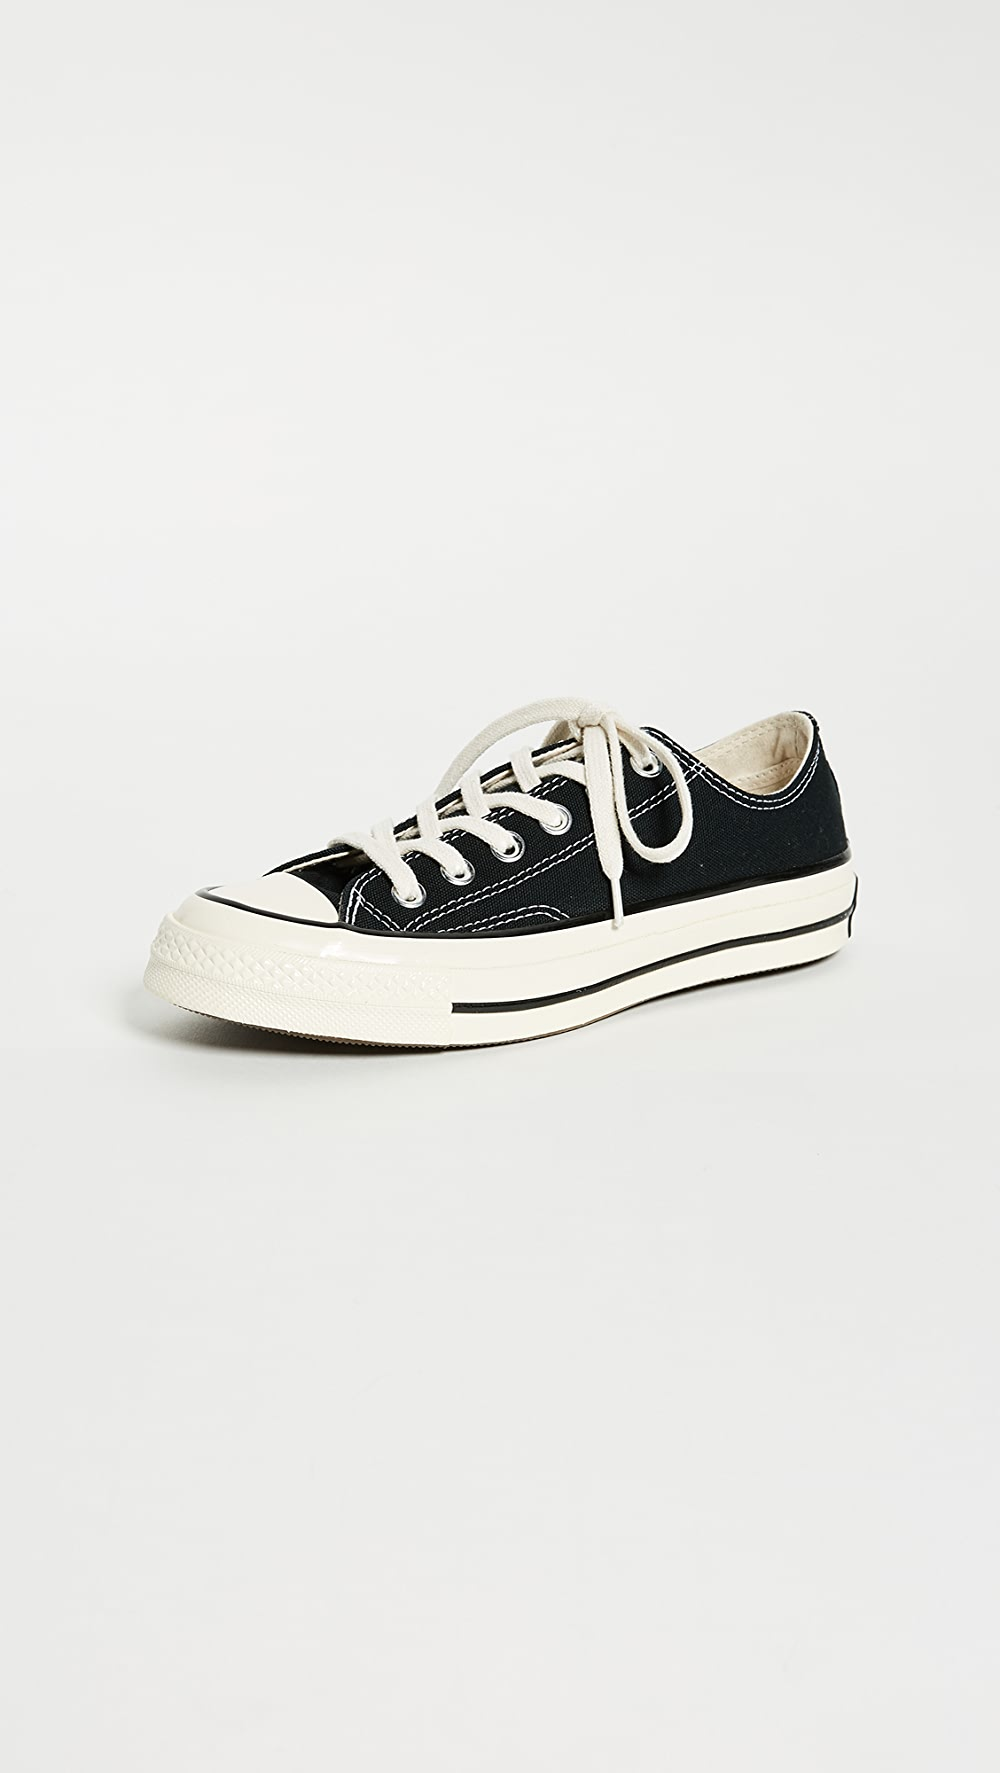 YOUTH CONVERSE CHUCK TAYLOR ALL STAR HI TOP  SHOES-SEE LISTING FOR SIZES 99